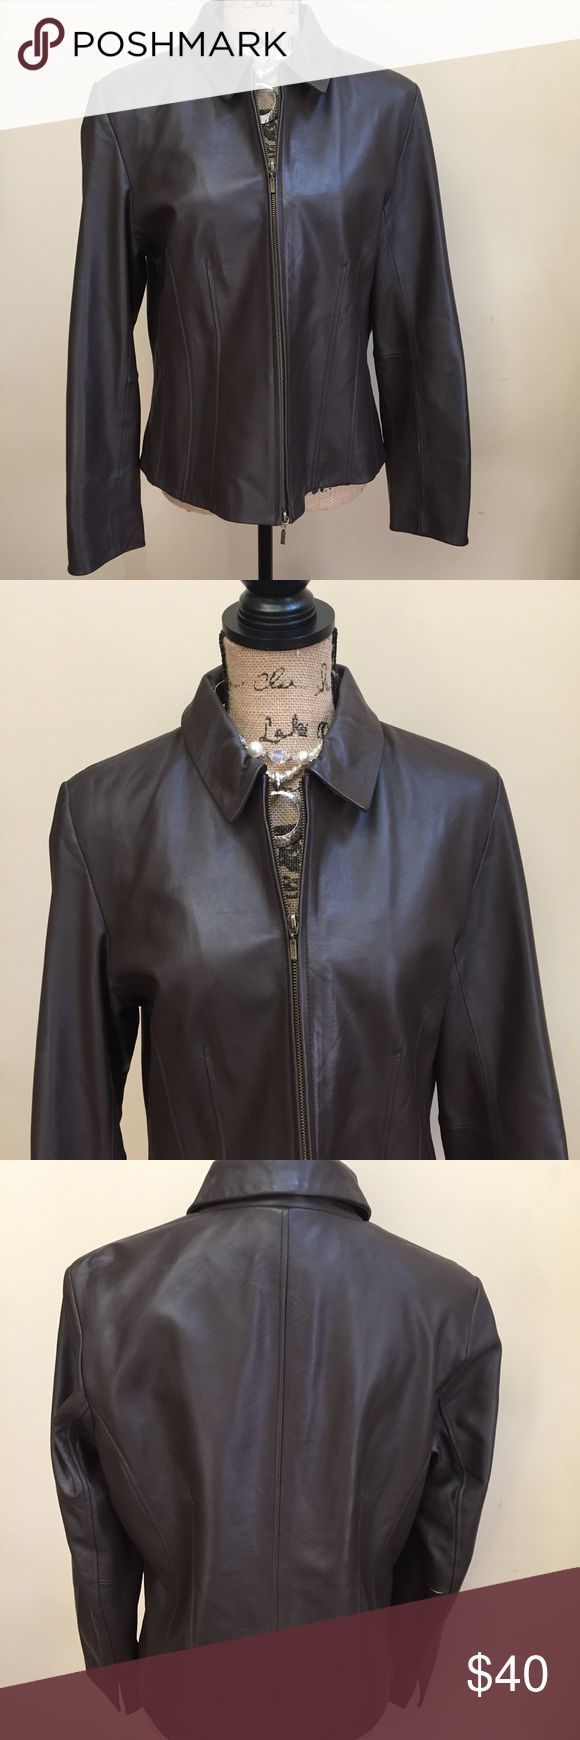 Coldwater Creek Leather Jacket Gorgeous leather jacket, has a discolored area and a slight scratch, see pics, the discoloration can probably be repaired easily, jacket is lined and in great condition other than the 2 area Coldwater Creek Jackets & Coats Blazers